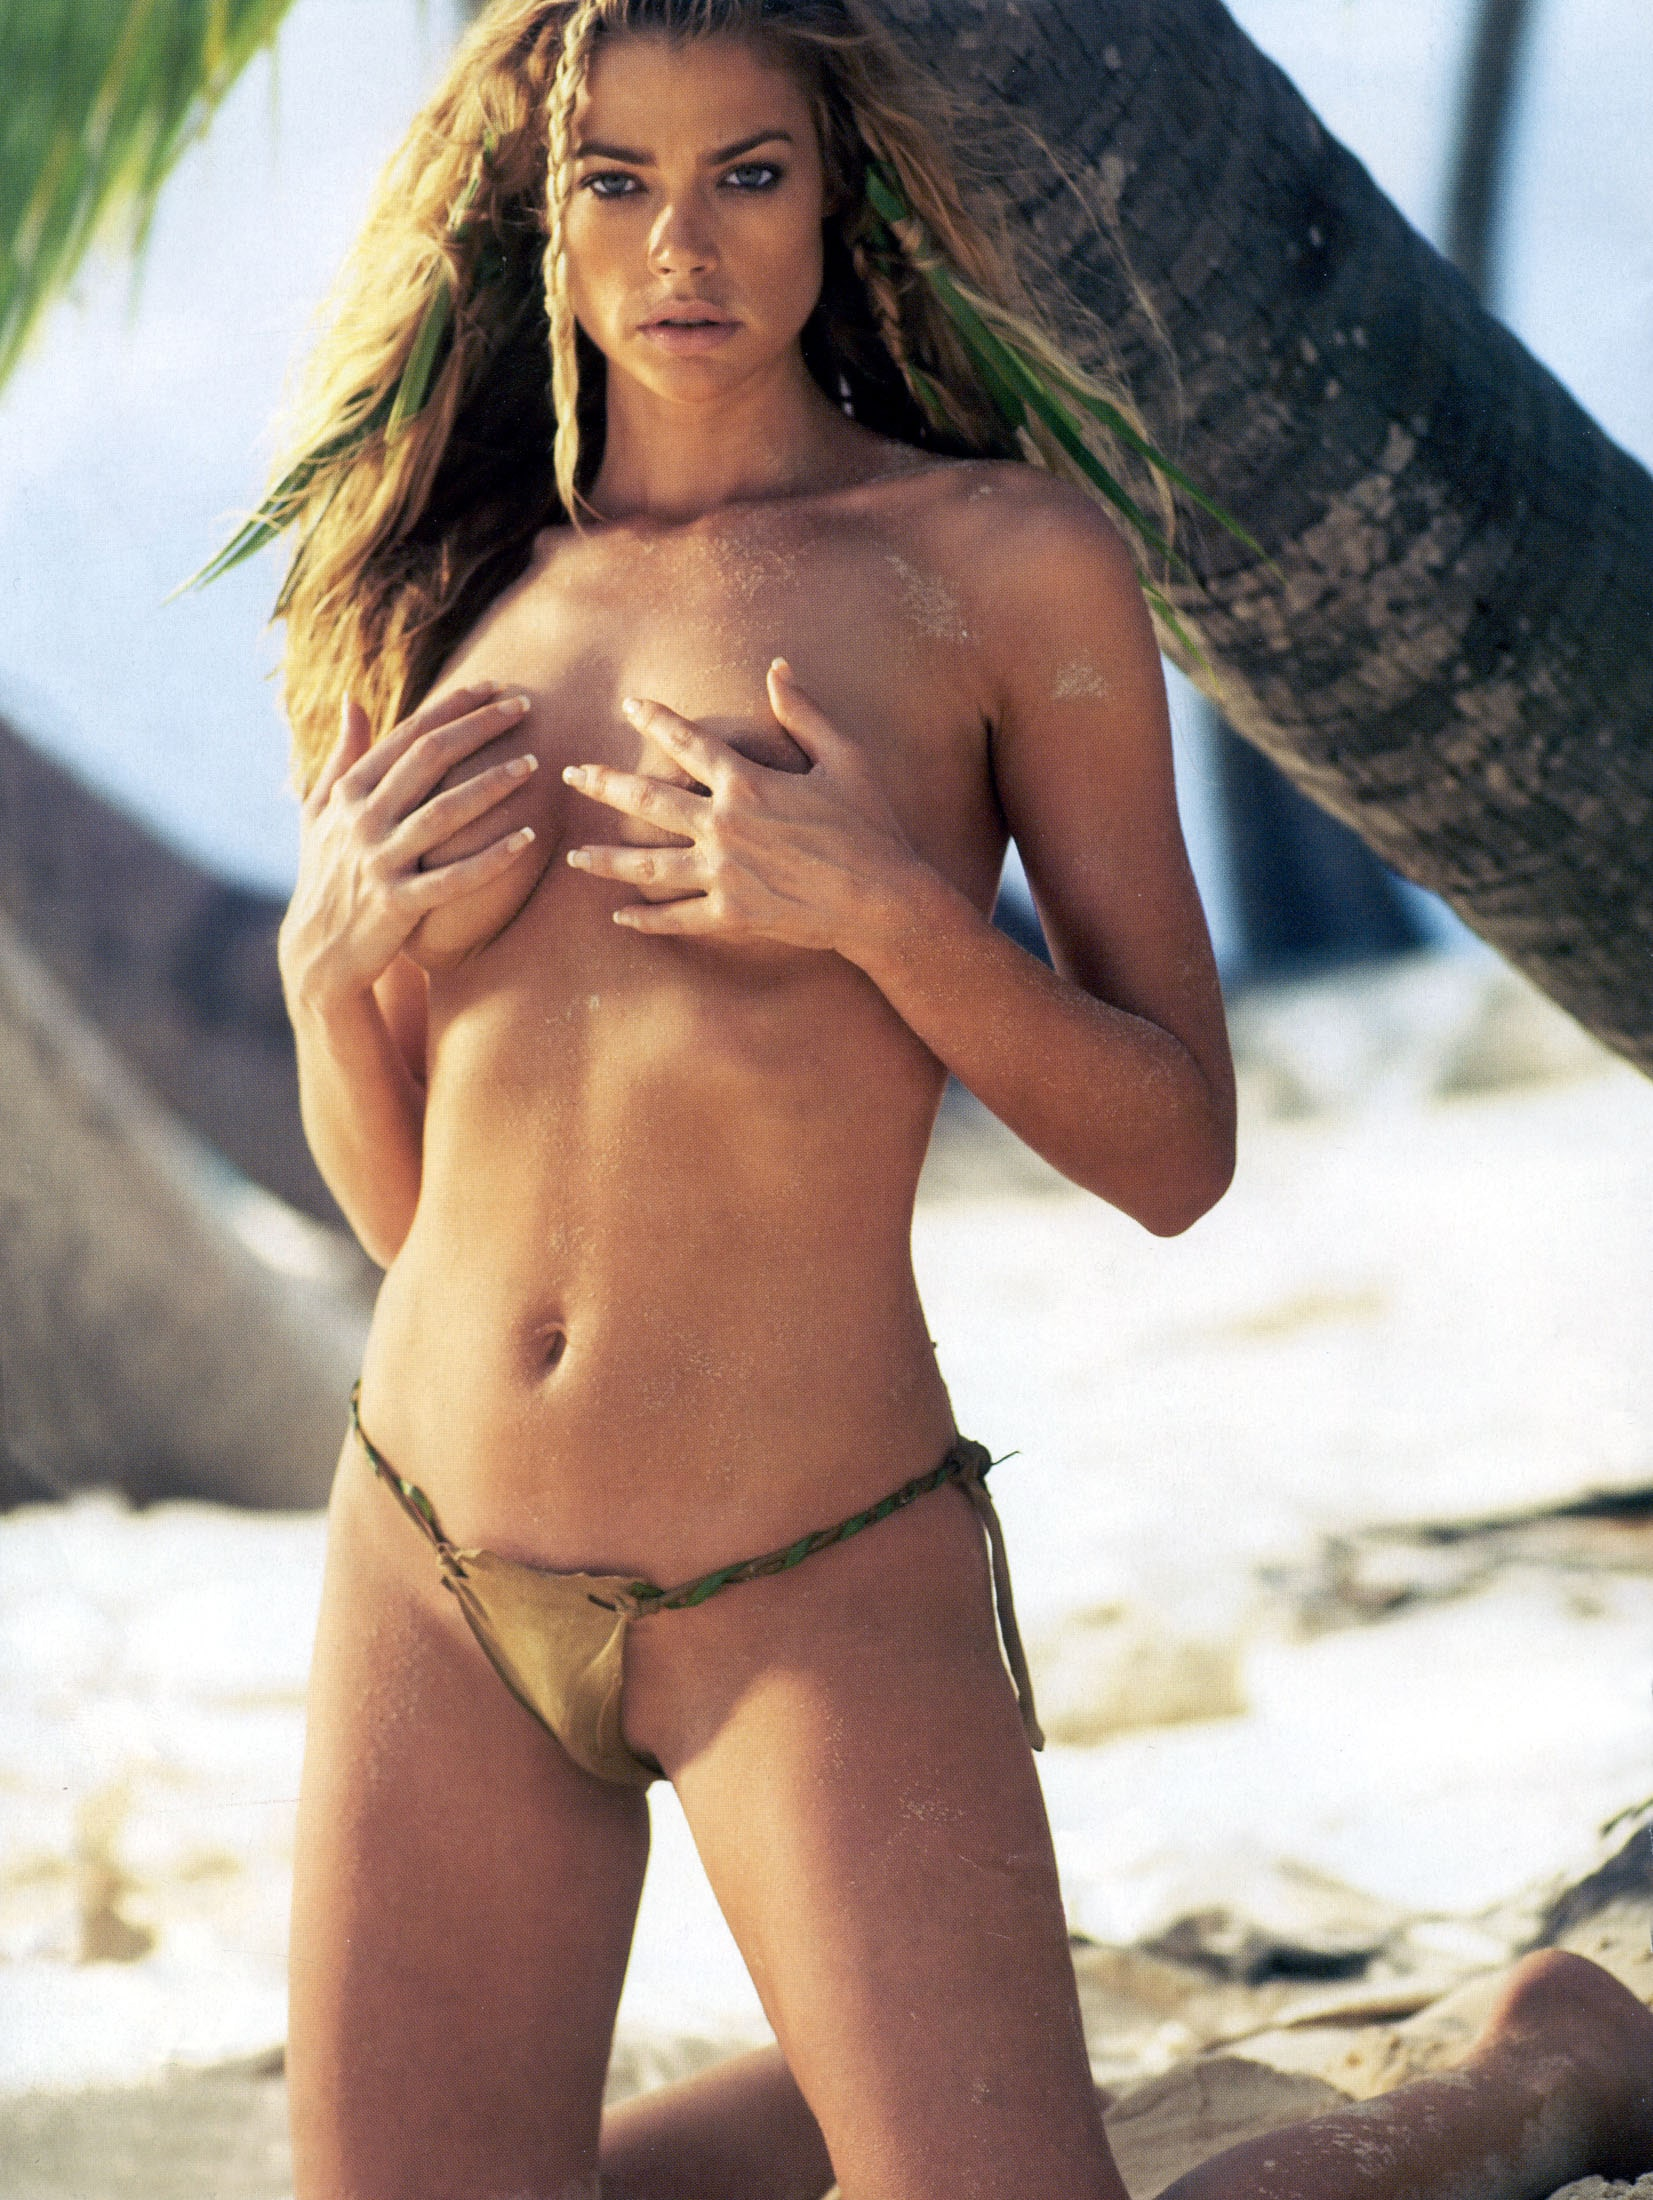 Denise richards Topless